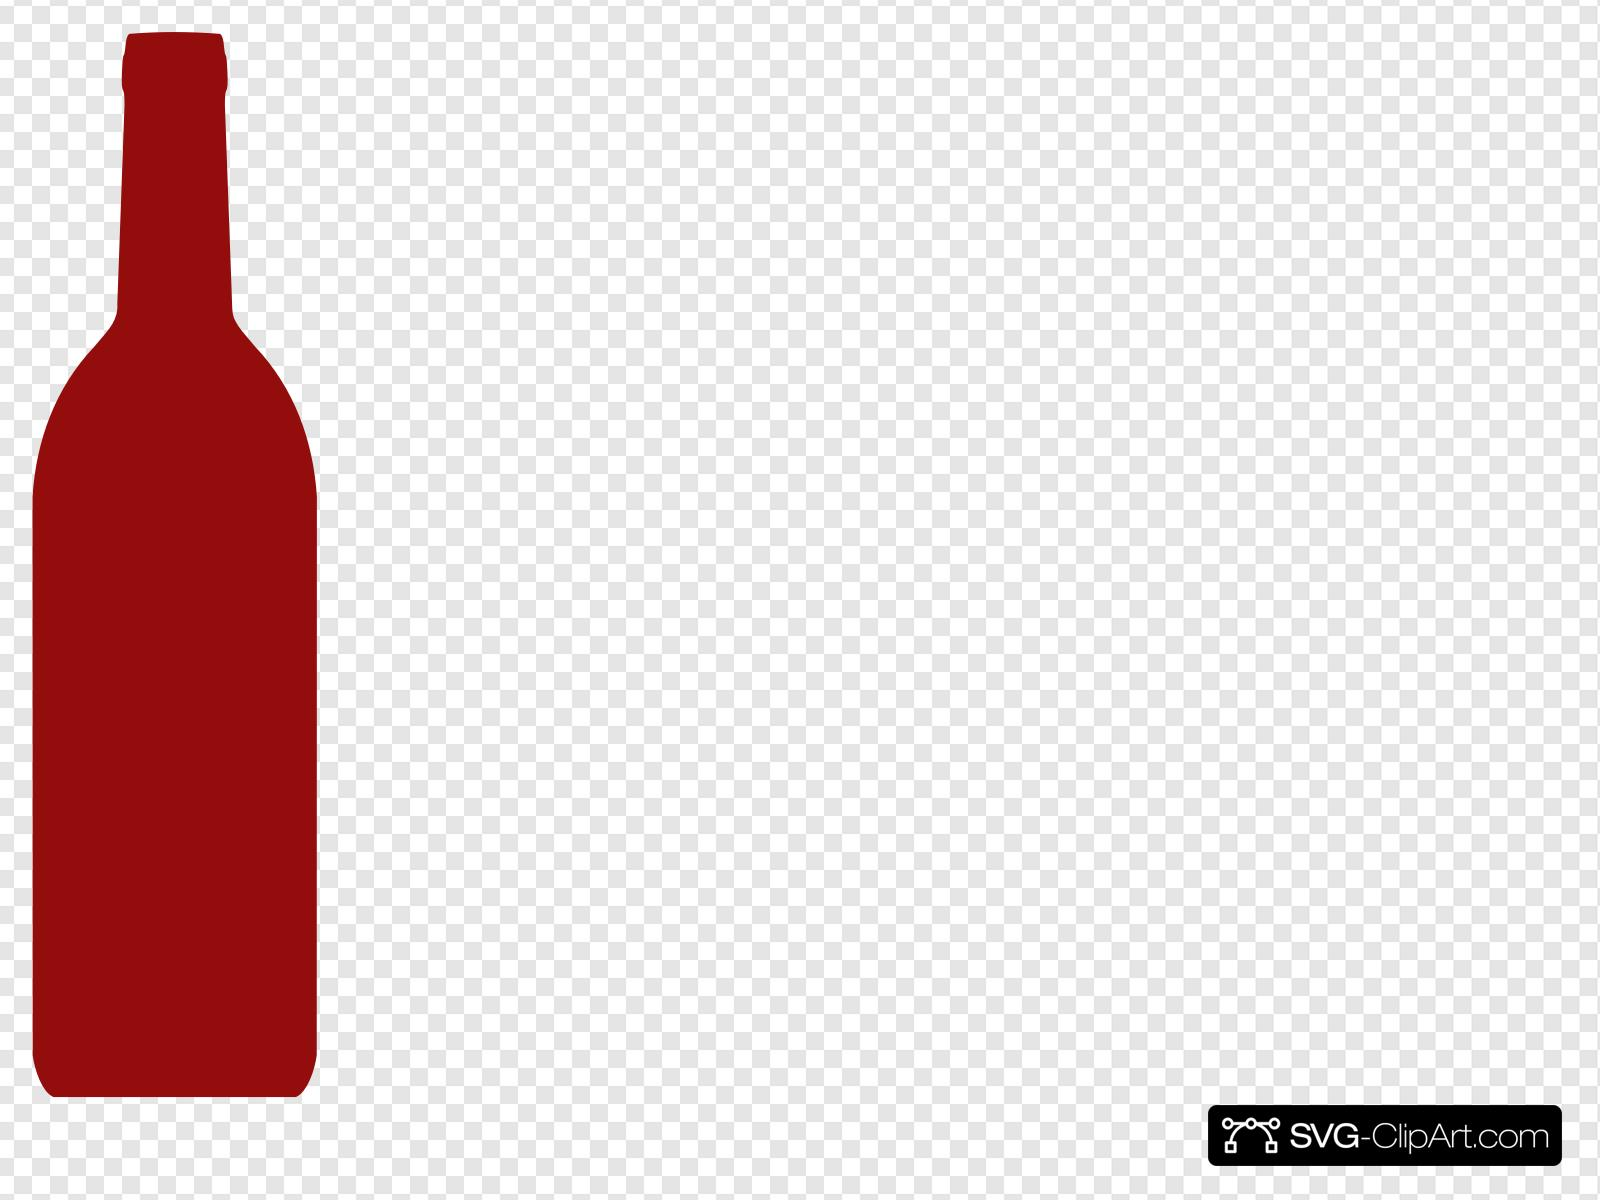 Red Wine Bottle Clip art, Icon and SVG.